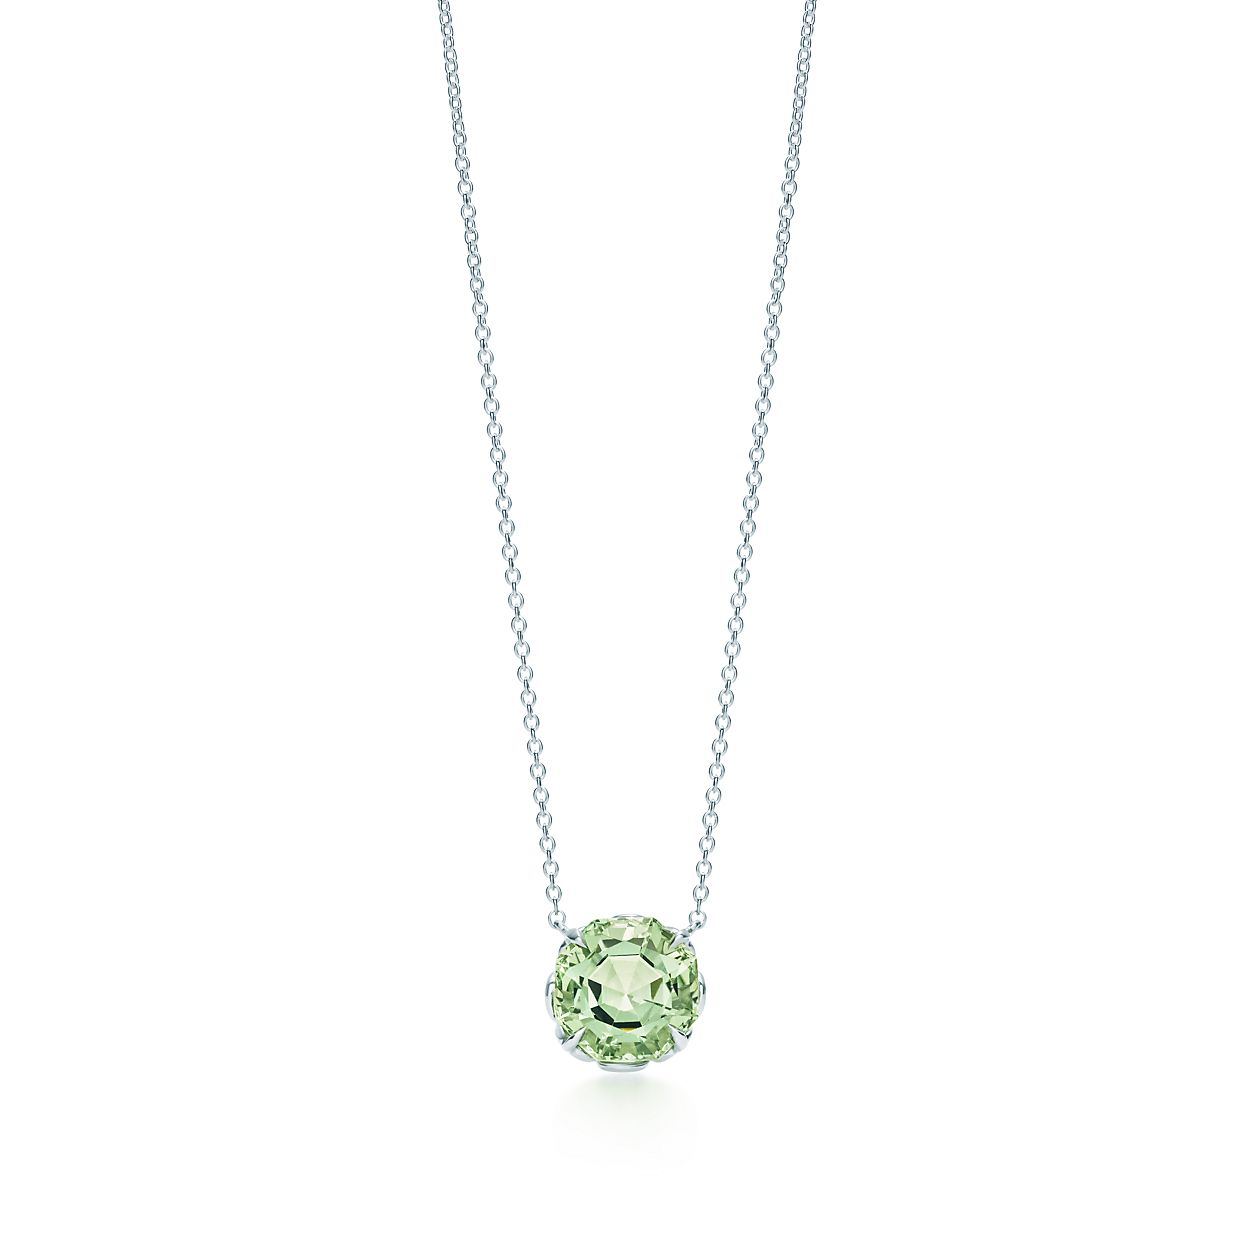 Tiffany sparklers pendant in sterling silver with an octagonal green tiffany sparklersgreen quartz pendant tiffany sparklersgreen quartz pendant mozeypictures Image collections